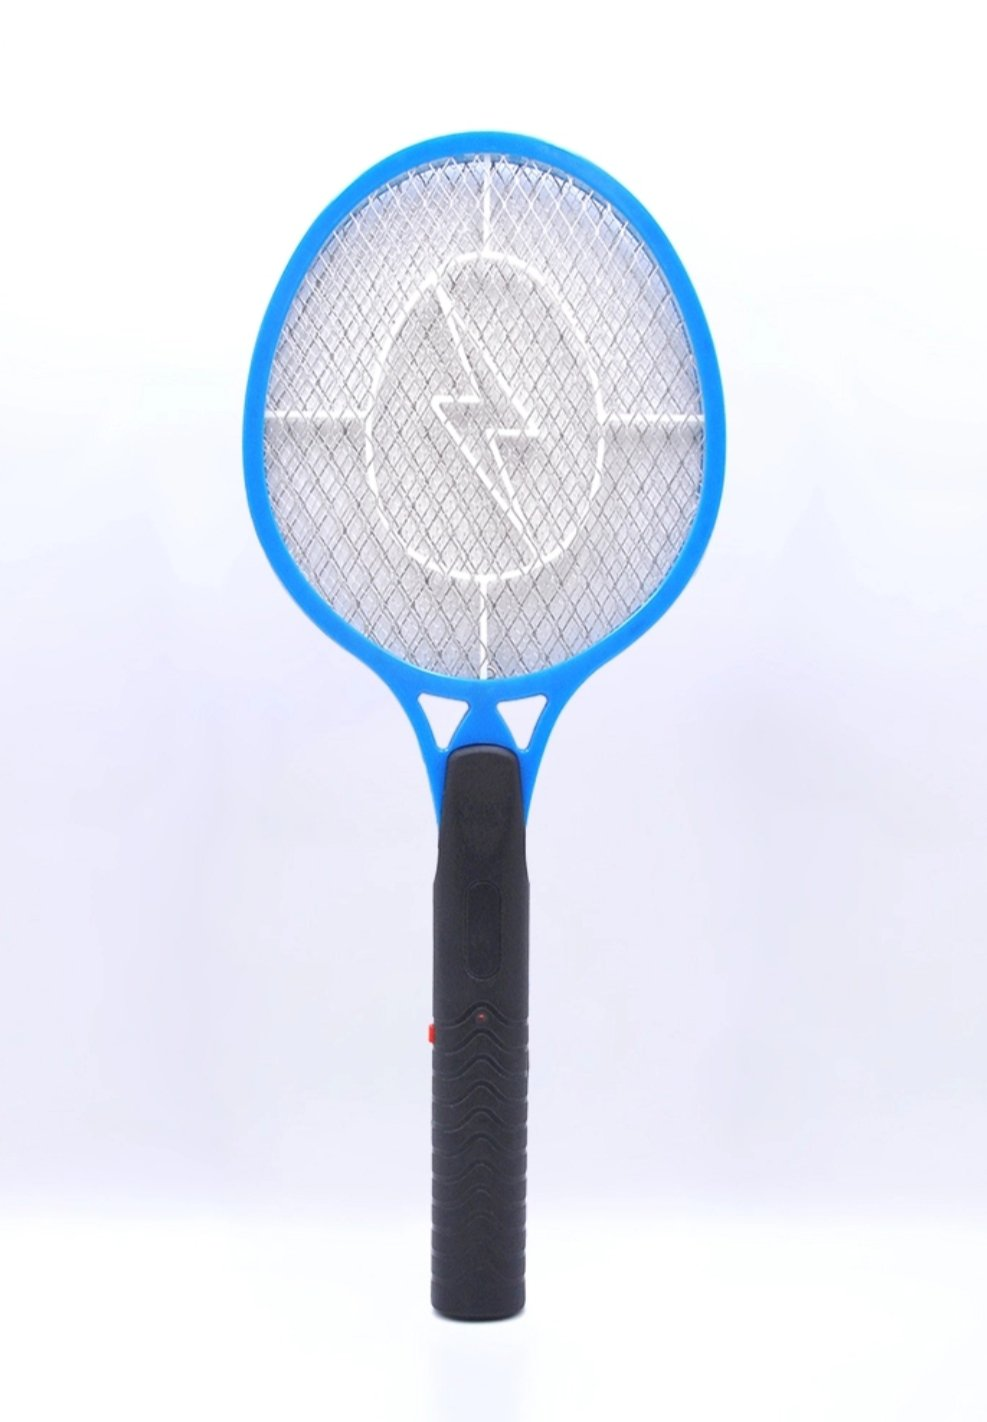 Handheld Bug Zapper Electric Bug Zapper Fly/Mosquito Swatter Best for Indoor and Outdoor Pest Control by Zapz (Image #5)